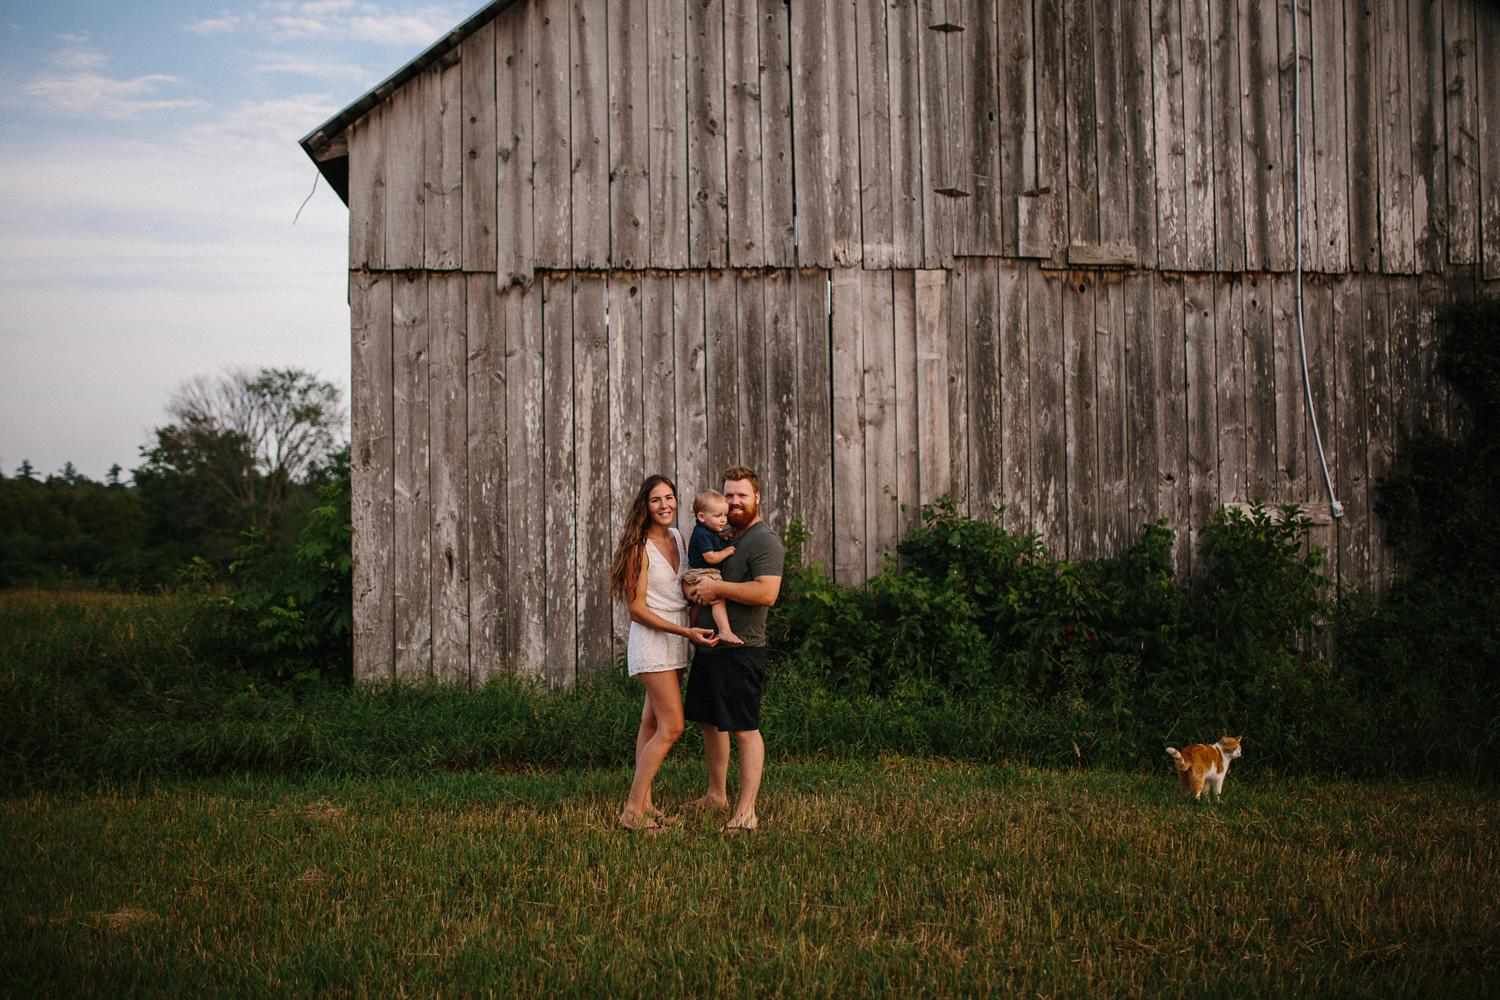 lanark highlands farm family photo session - kerry ford photography-038.jpg